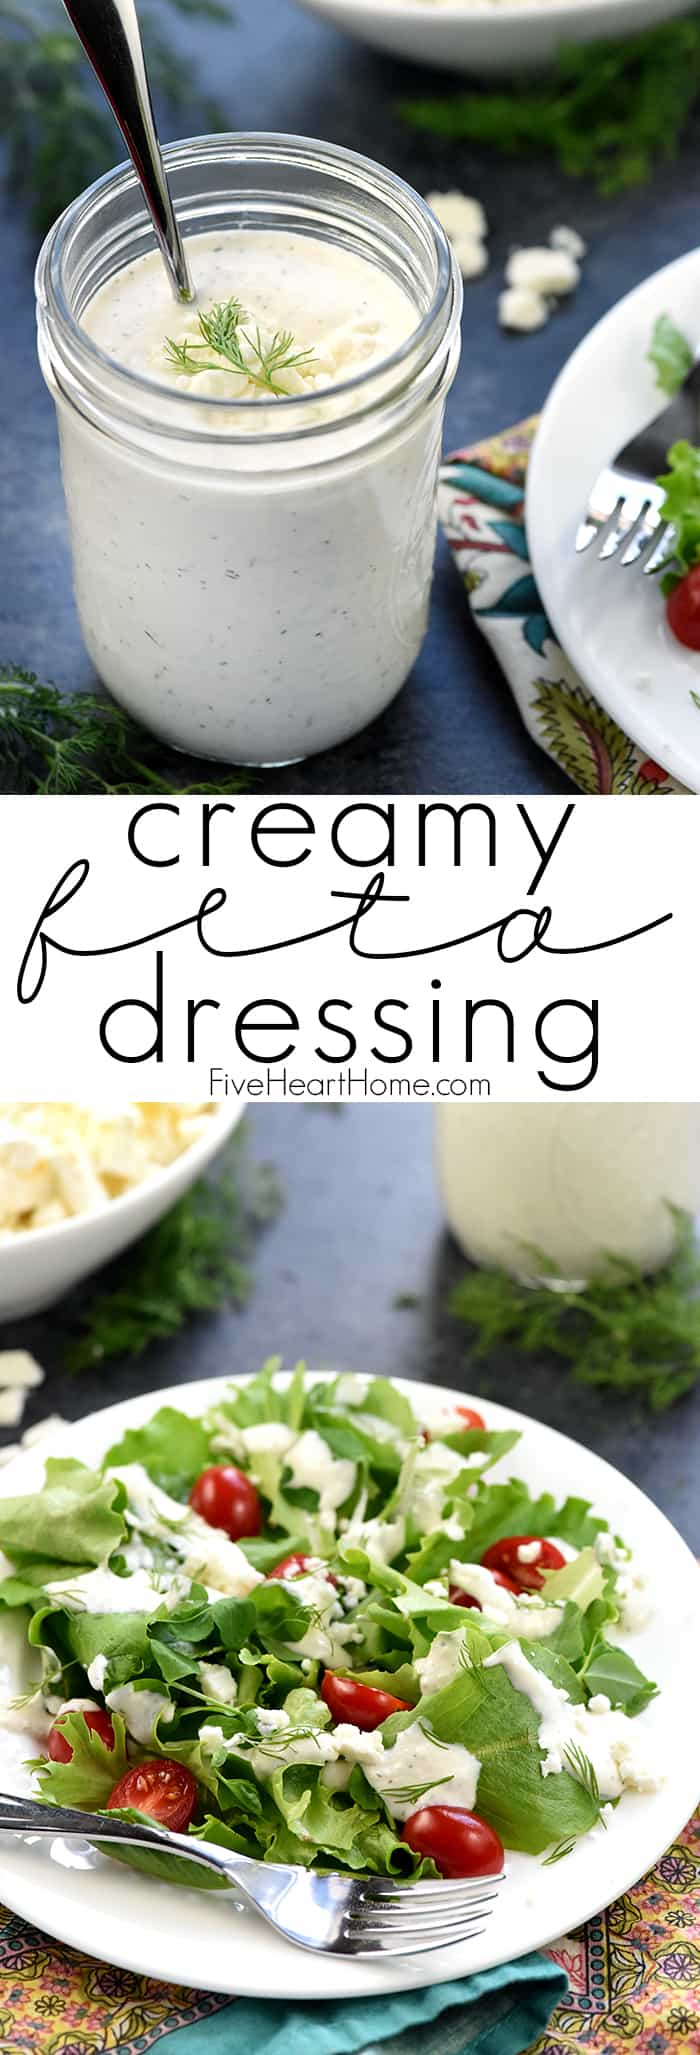 recipe: creamy feta salad dressing [9]